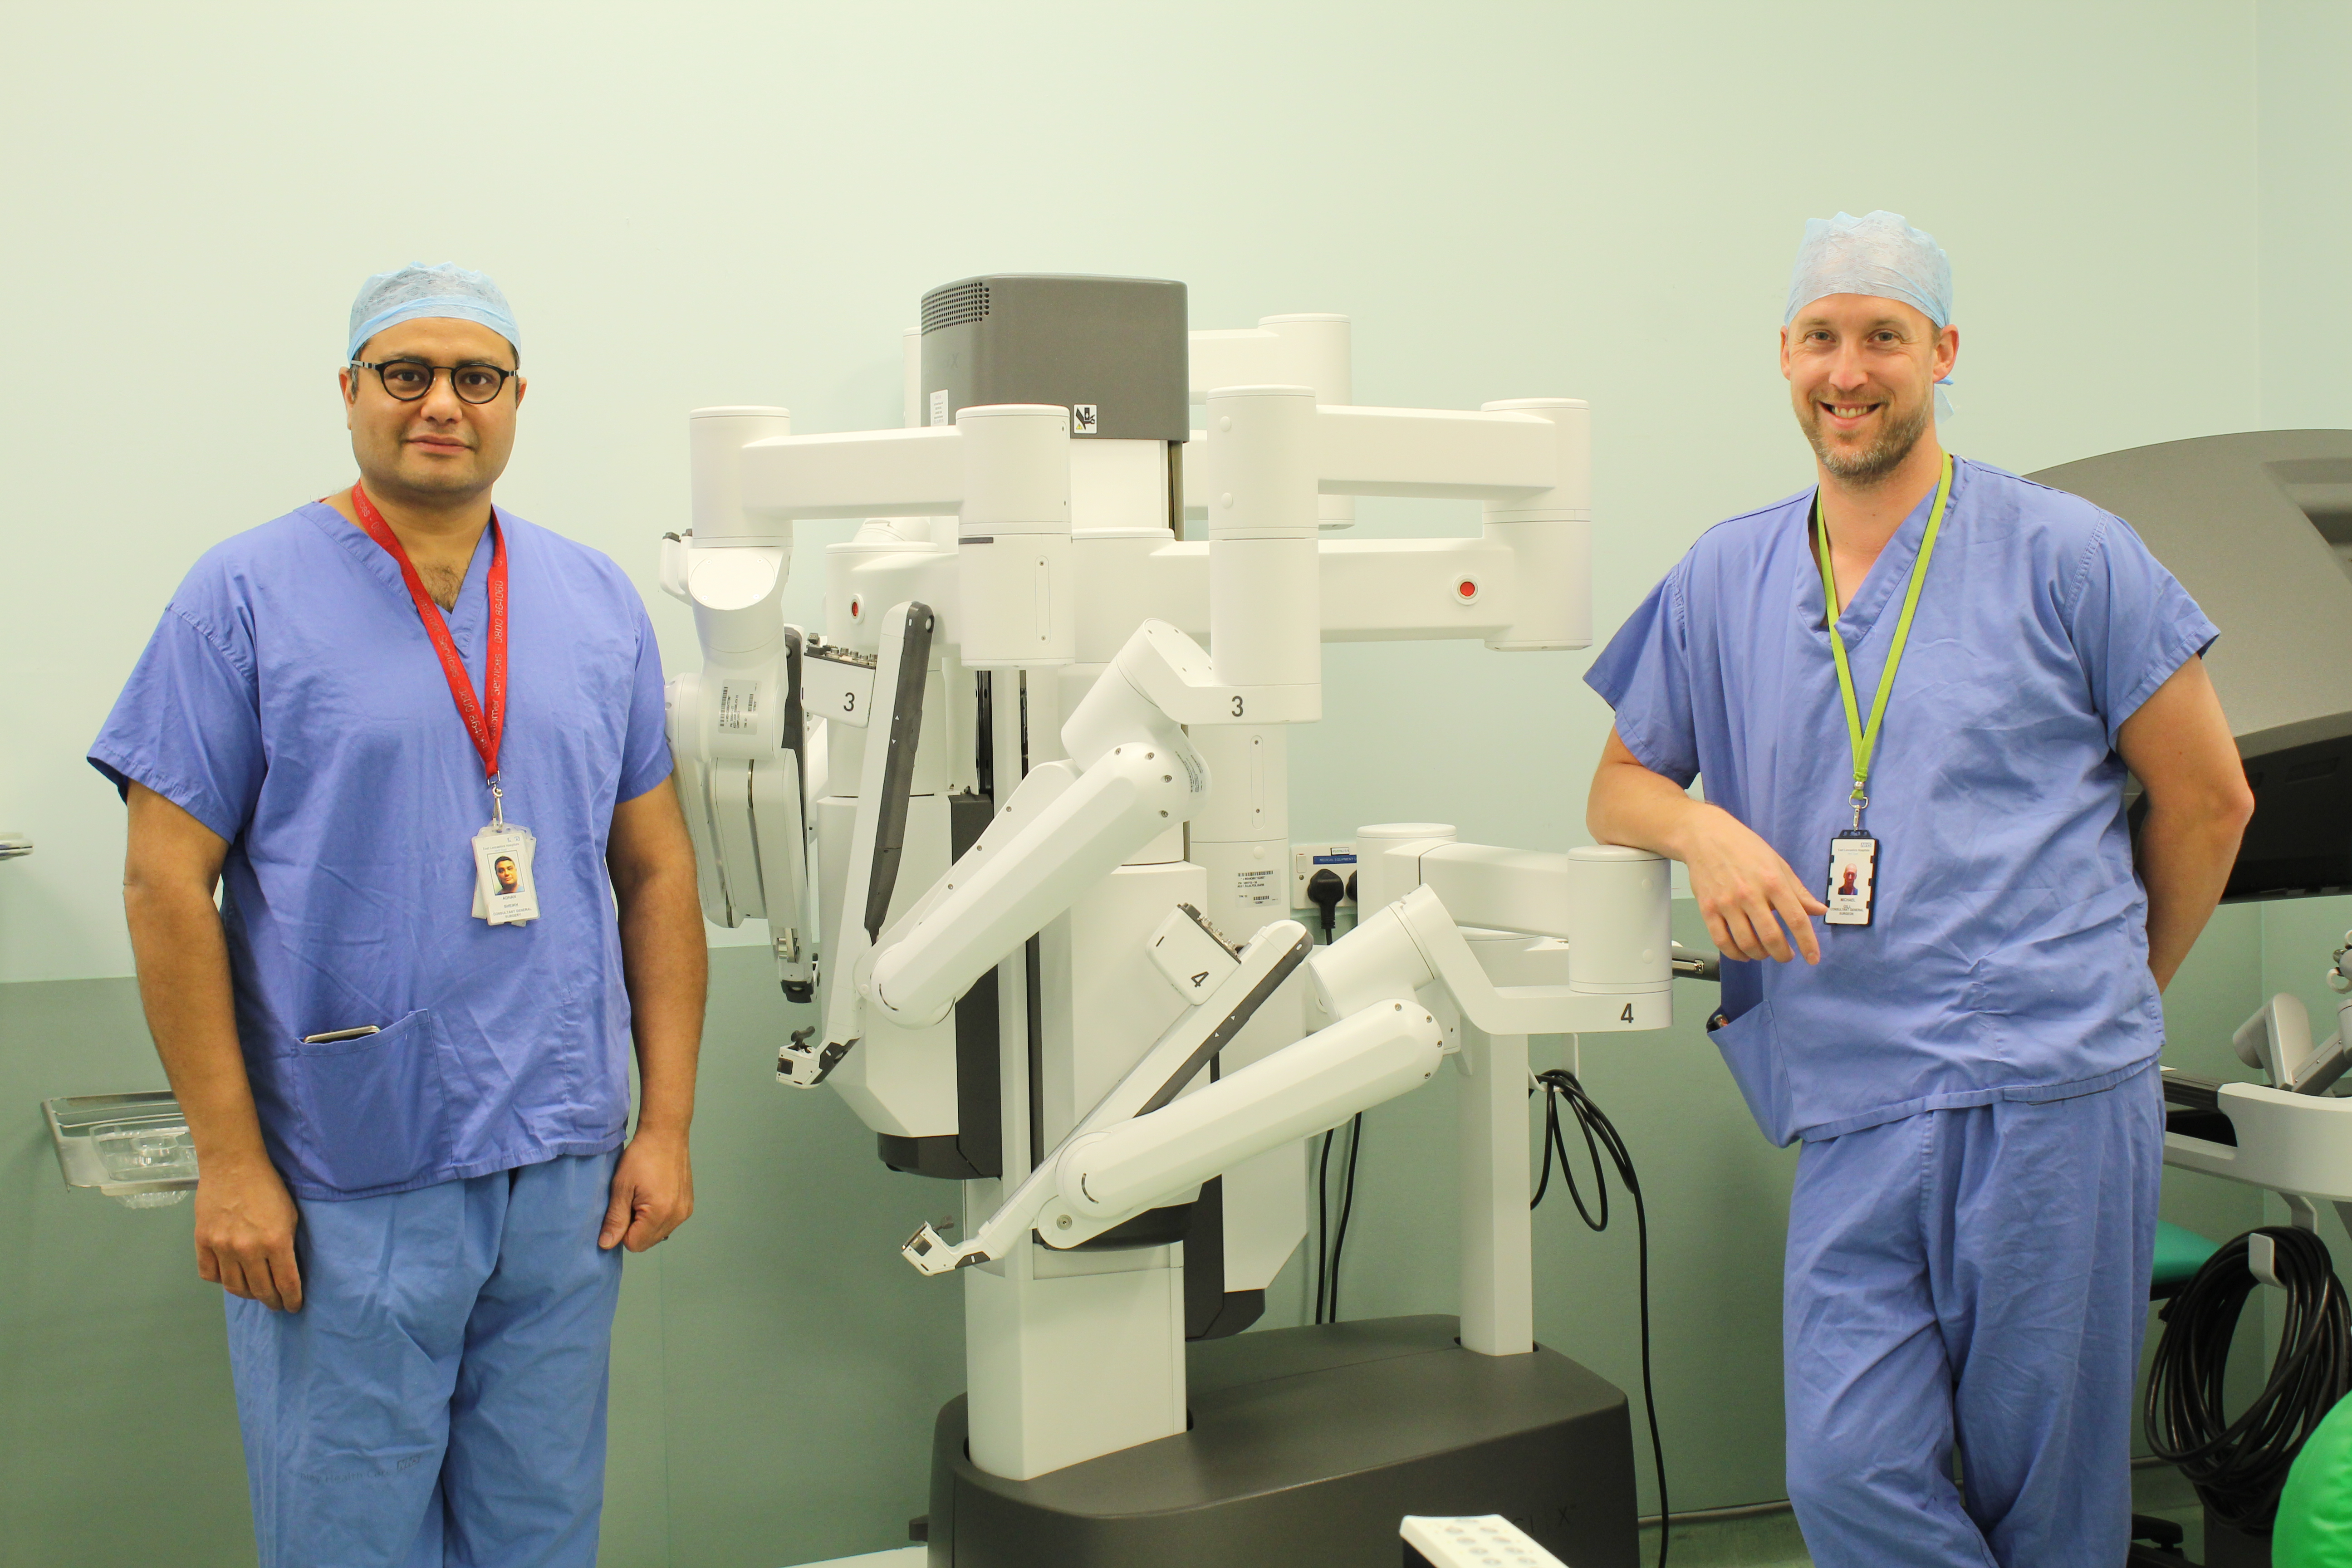 Mr Adnan Sheikh and Mr Micheal Gill with the surgical robot